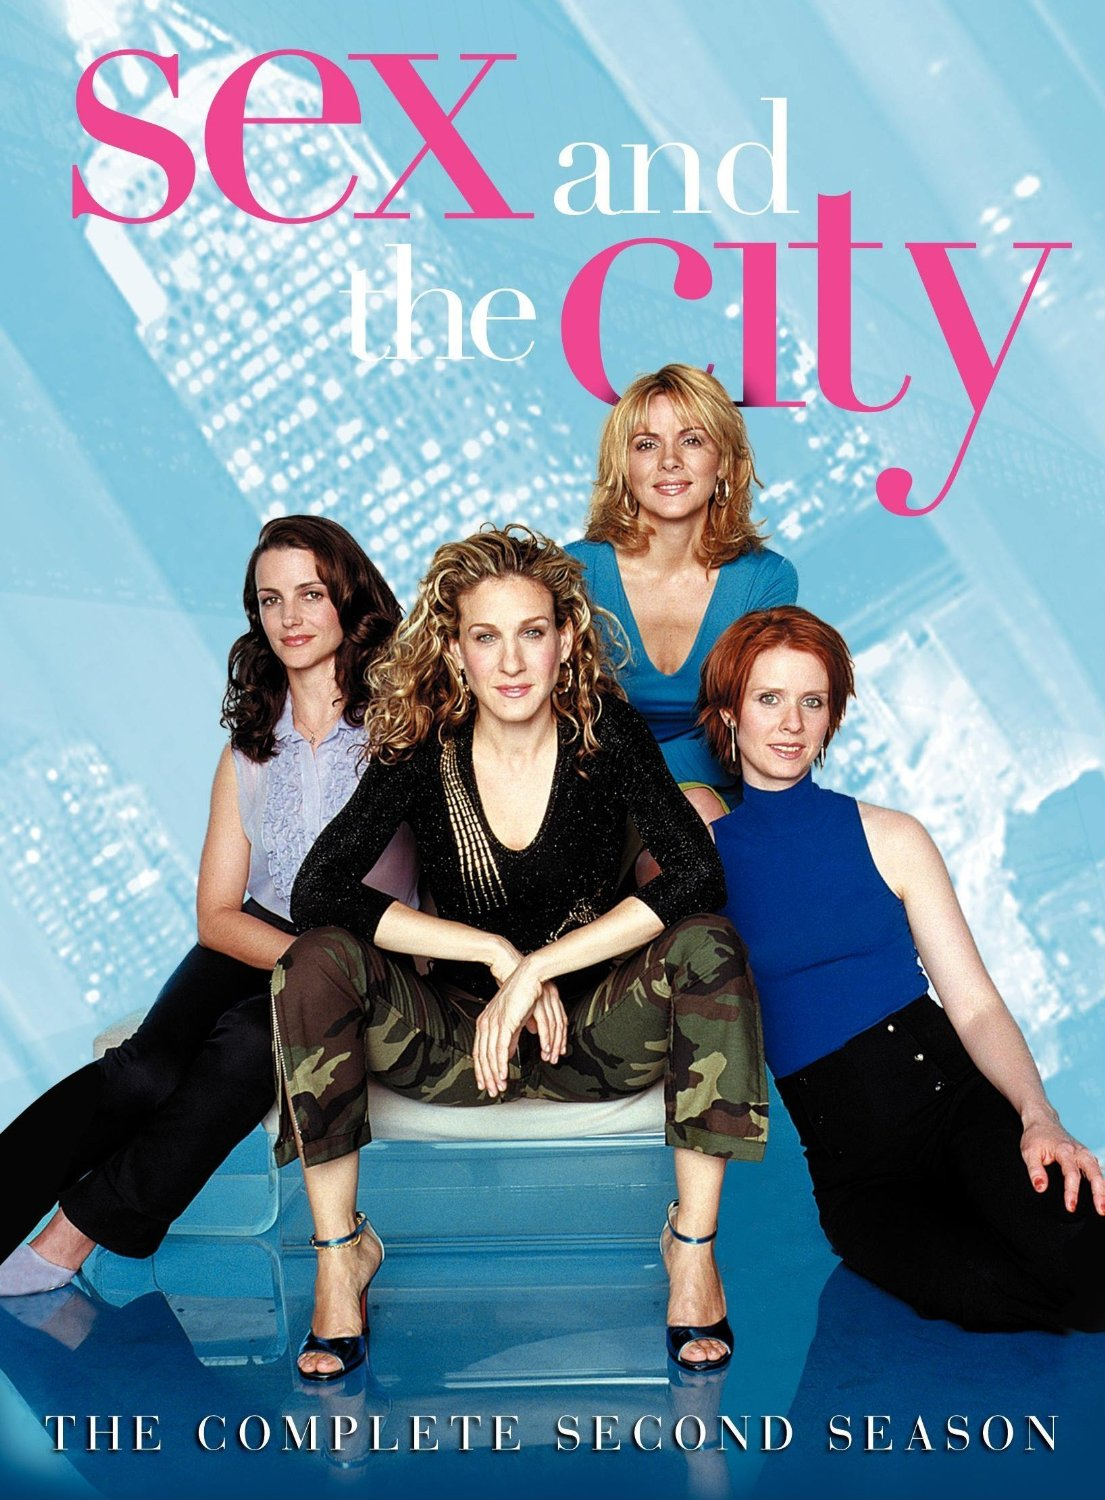 Watch sex and the city series online